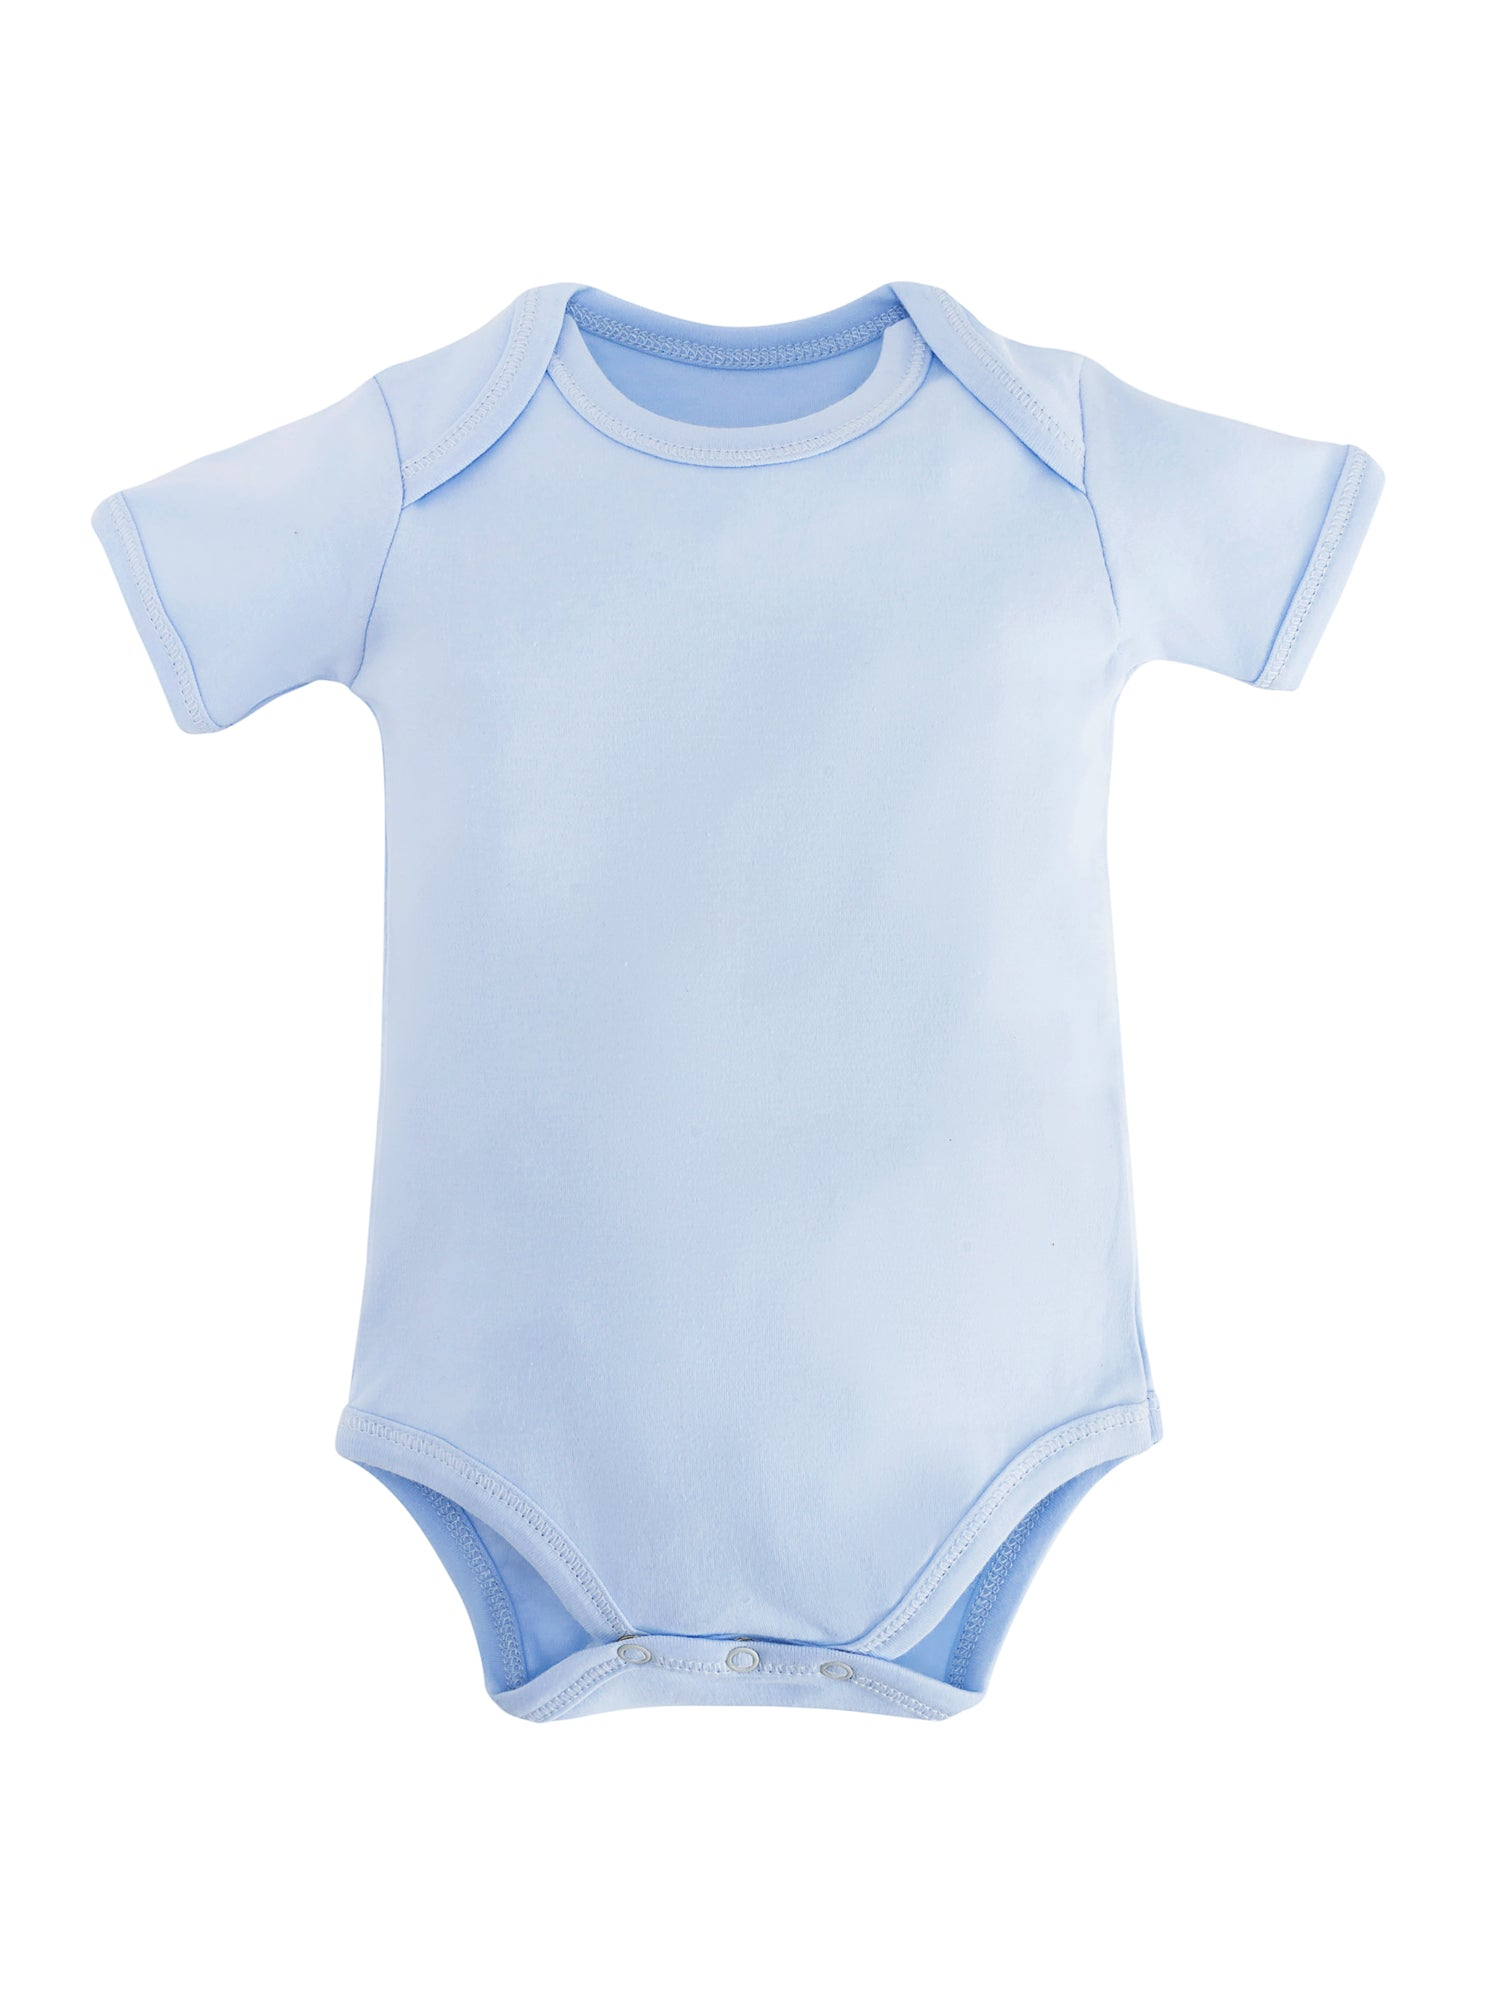 c2eba3a384132 Light Blue Organic Baby Bodysuit | Under the Nile